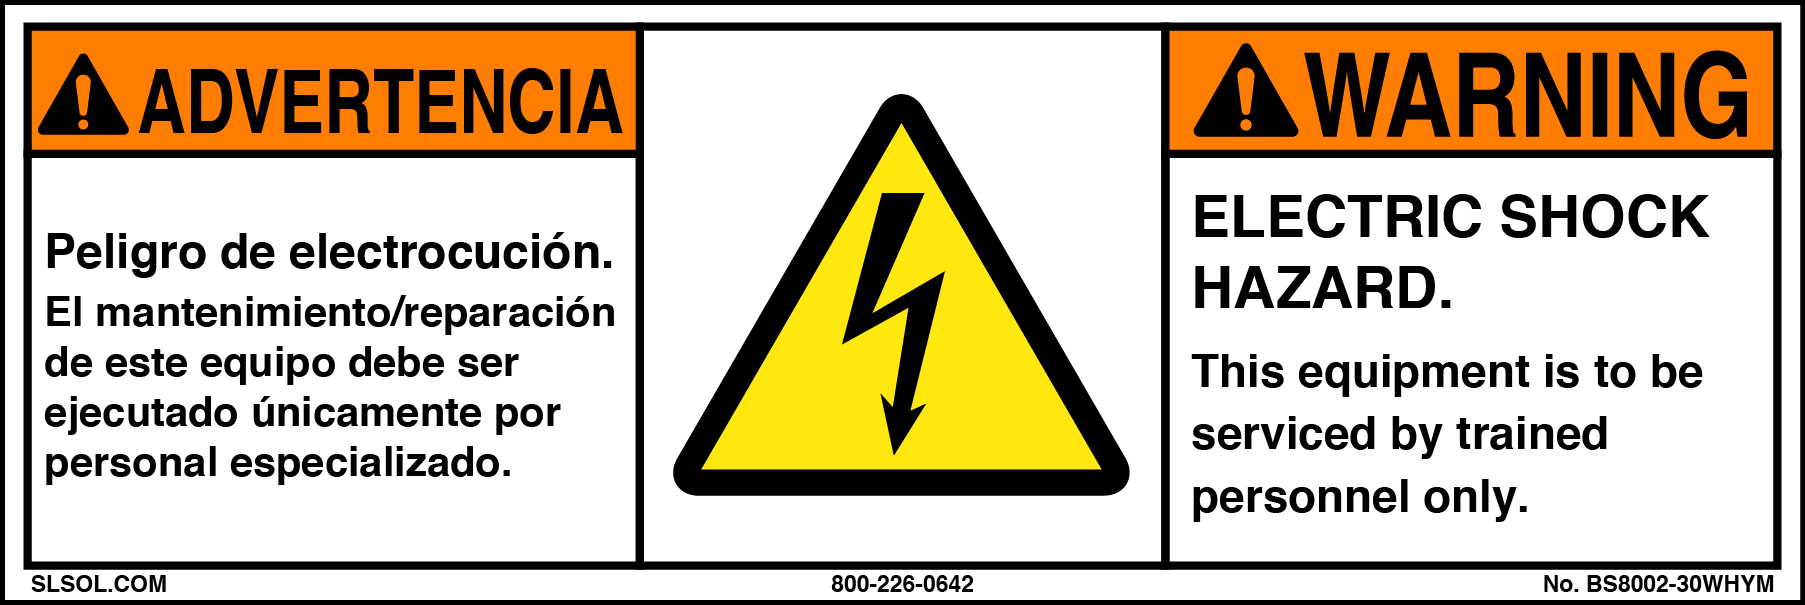 Warning - Electric Shock Hazard